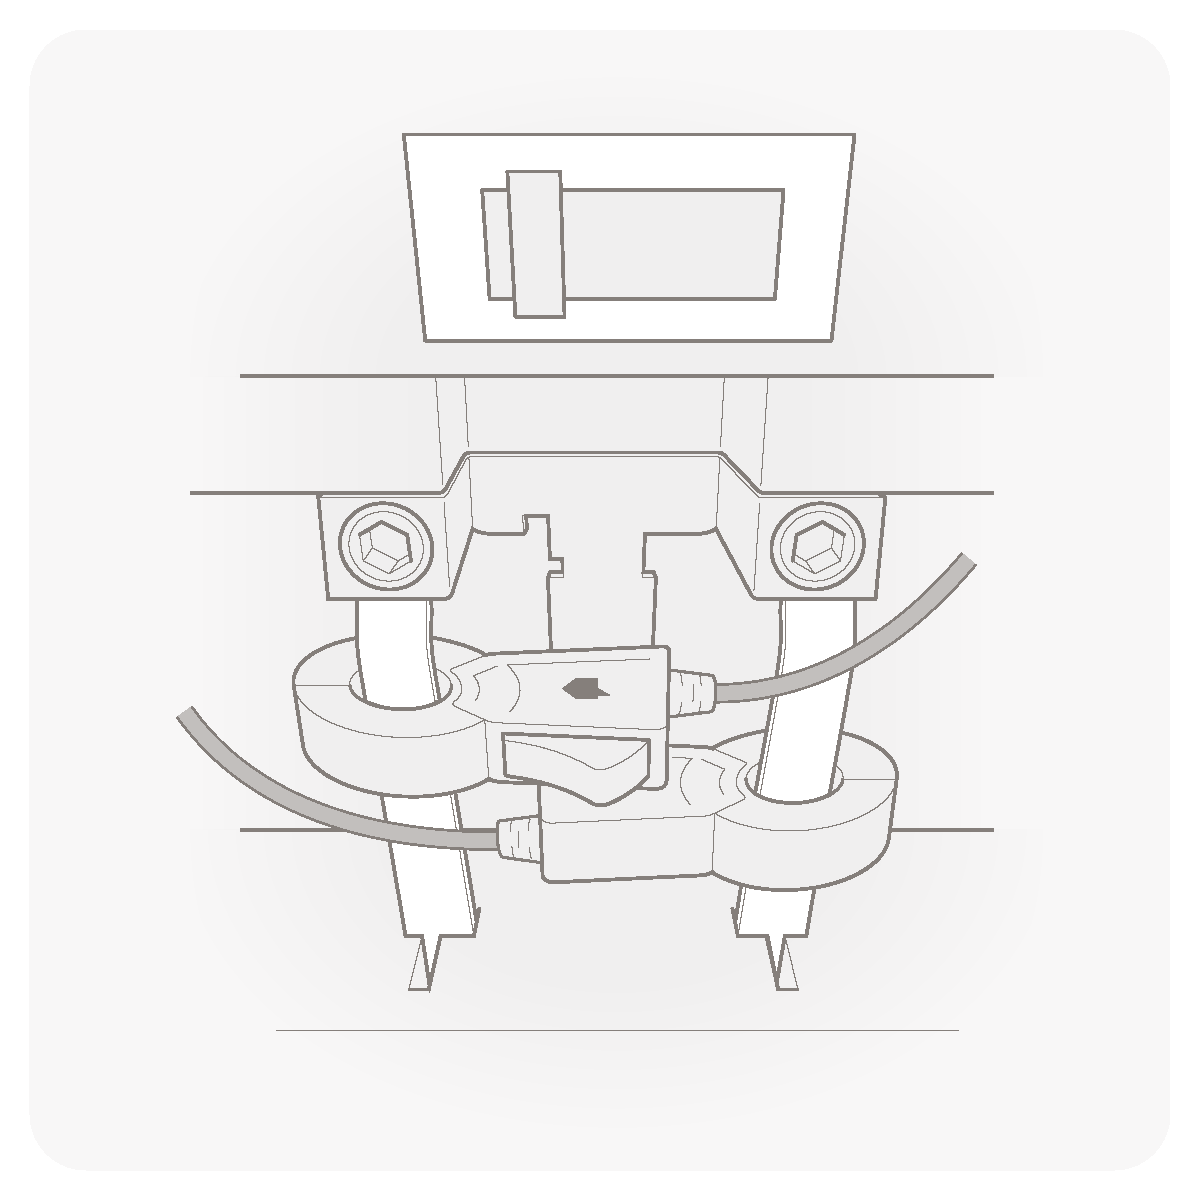 hight resolution of technical illustration 201809 bus bar install b png technical illustration 201809 bus bar install a png